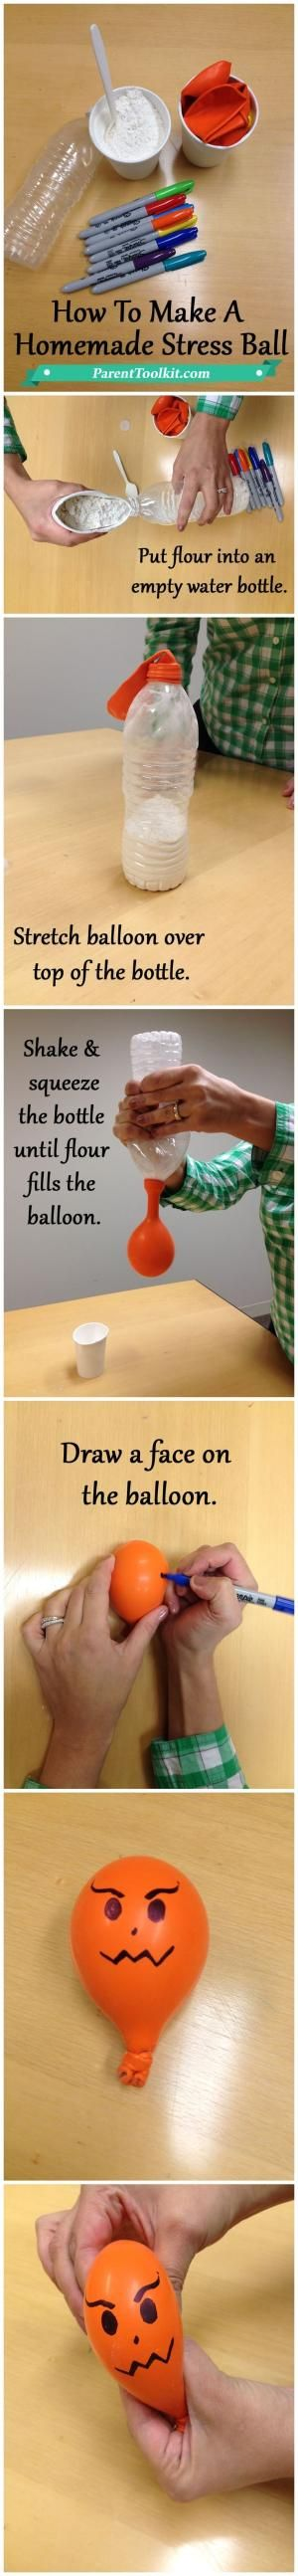 Help your child manage their stress by making homemade stress balls. by Arqangel